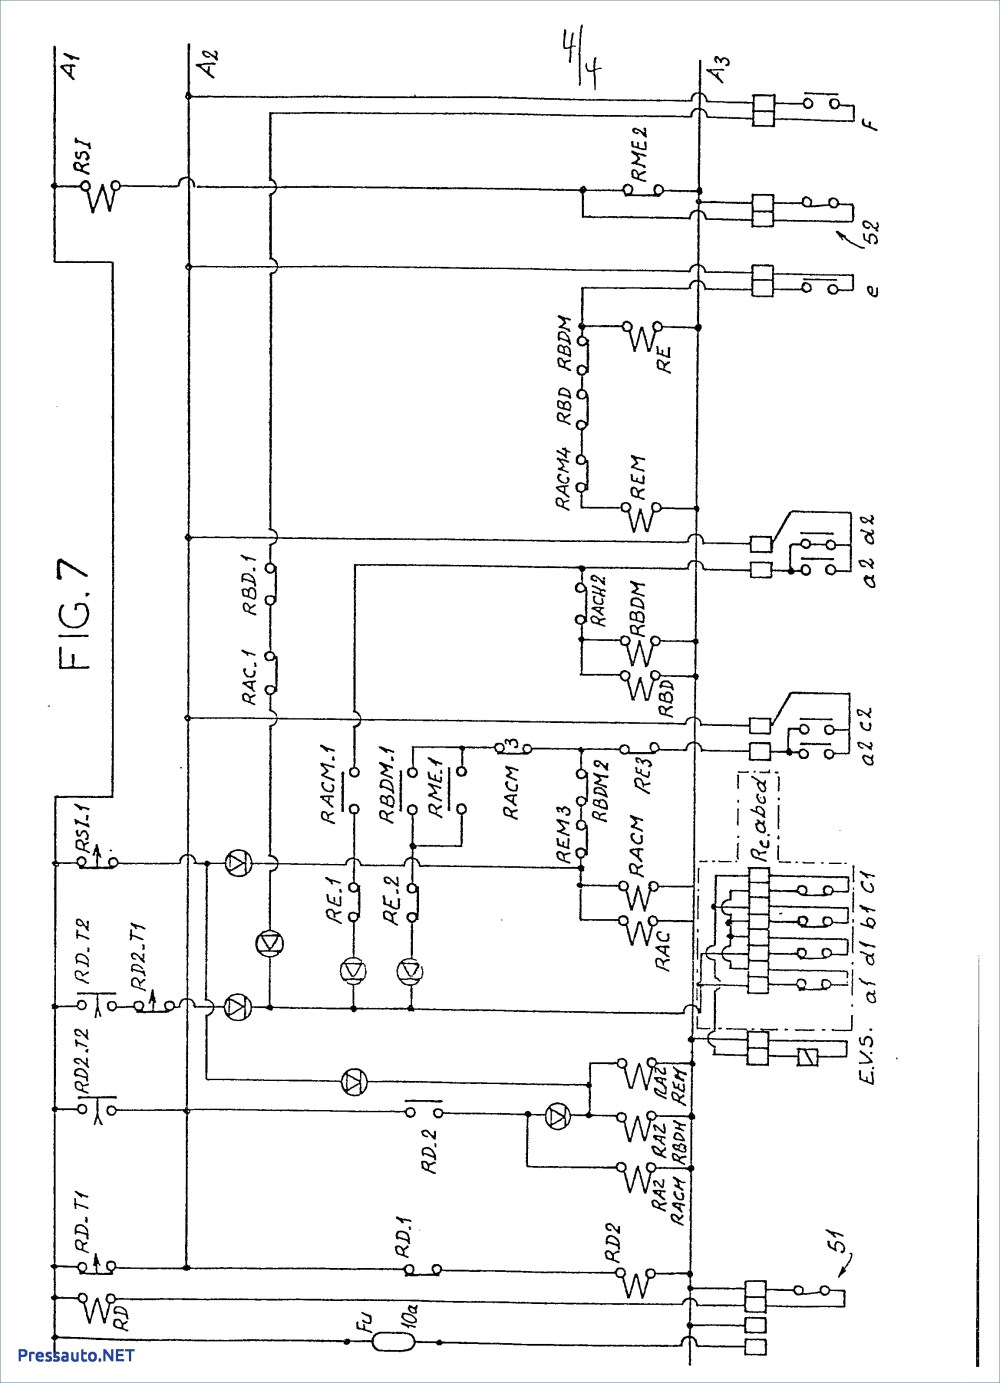 medium resolution of coffing wiring diagram wiring diagram metacoffing wiring diagram wiring diagram schematic coffing wiring diagram